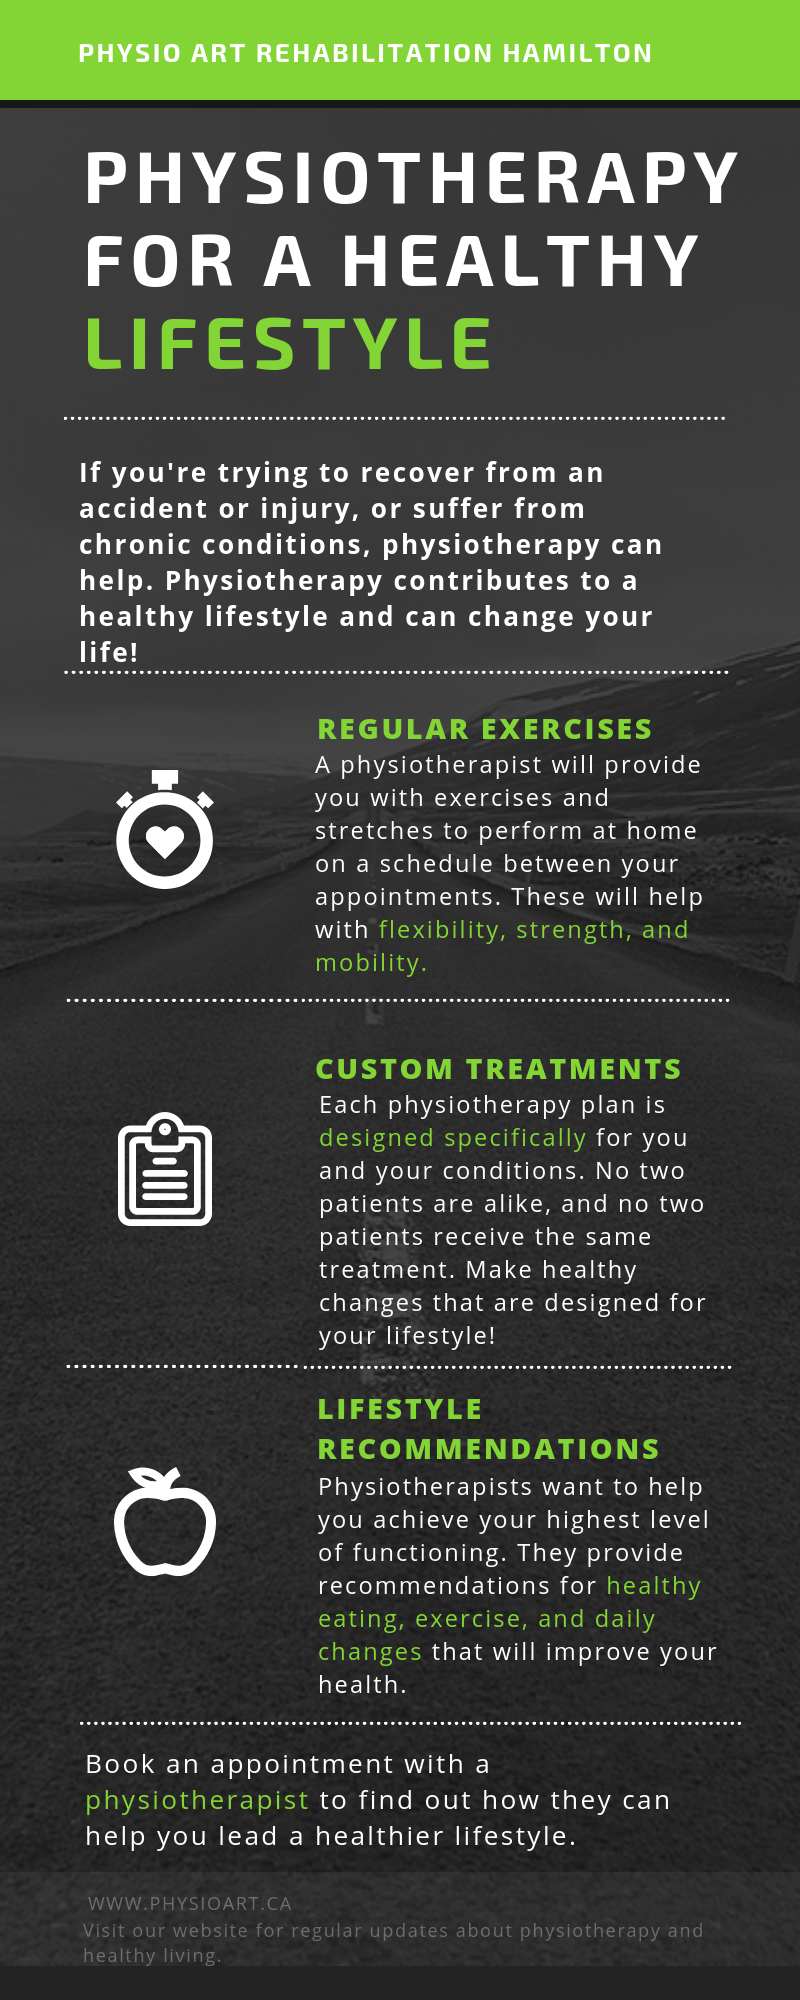 hamilton physiotherapy and health benefits